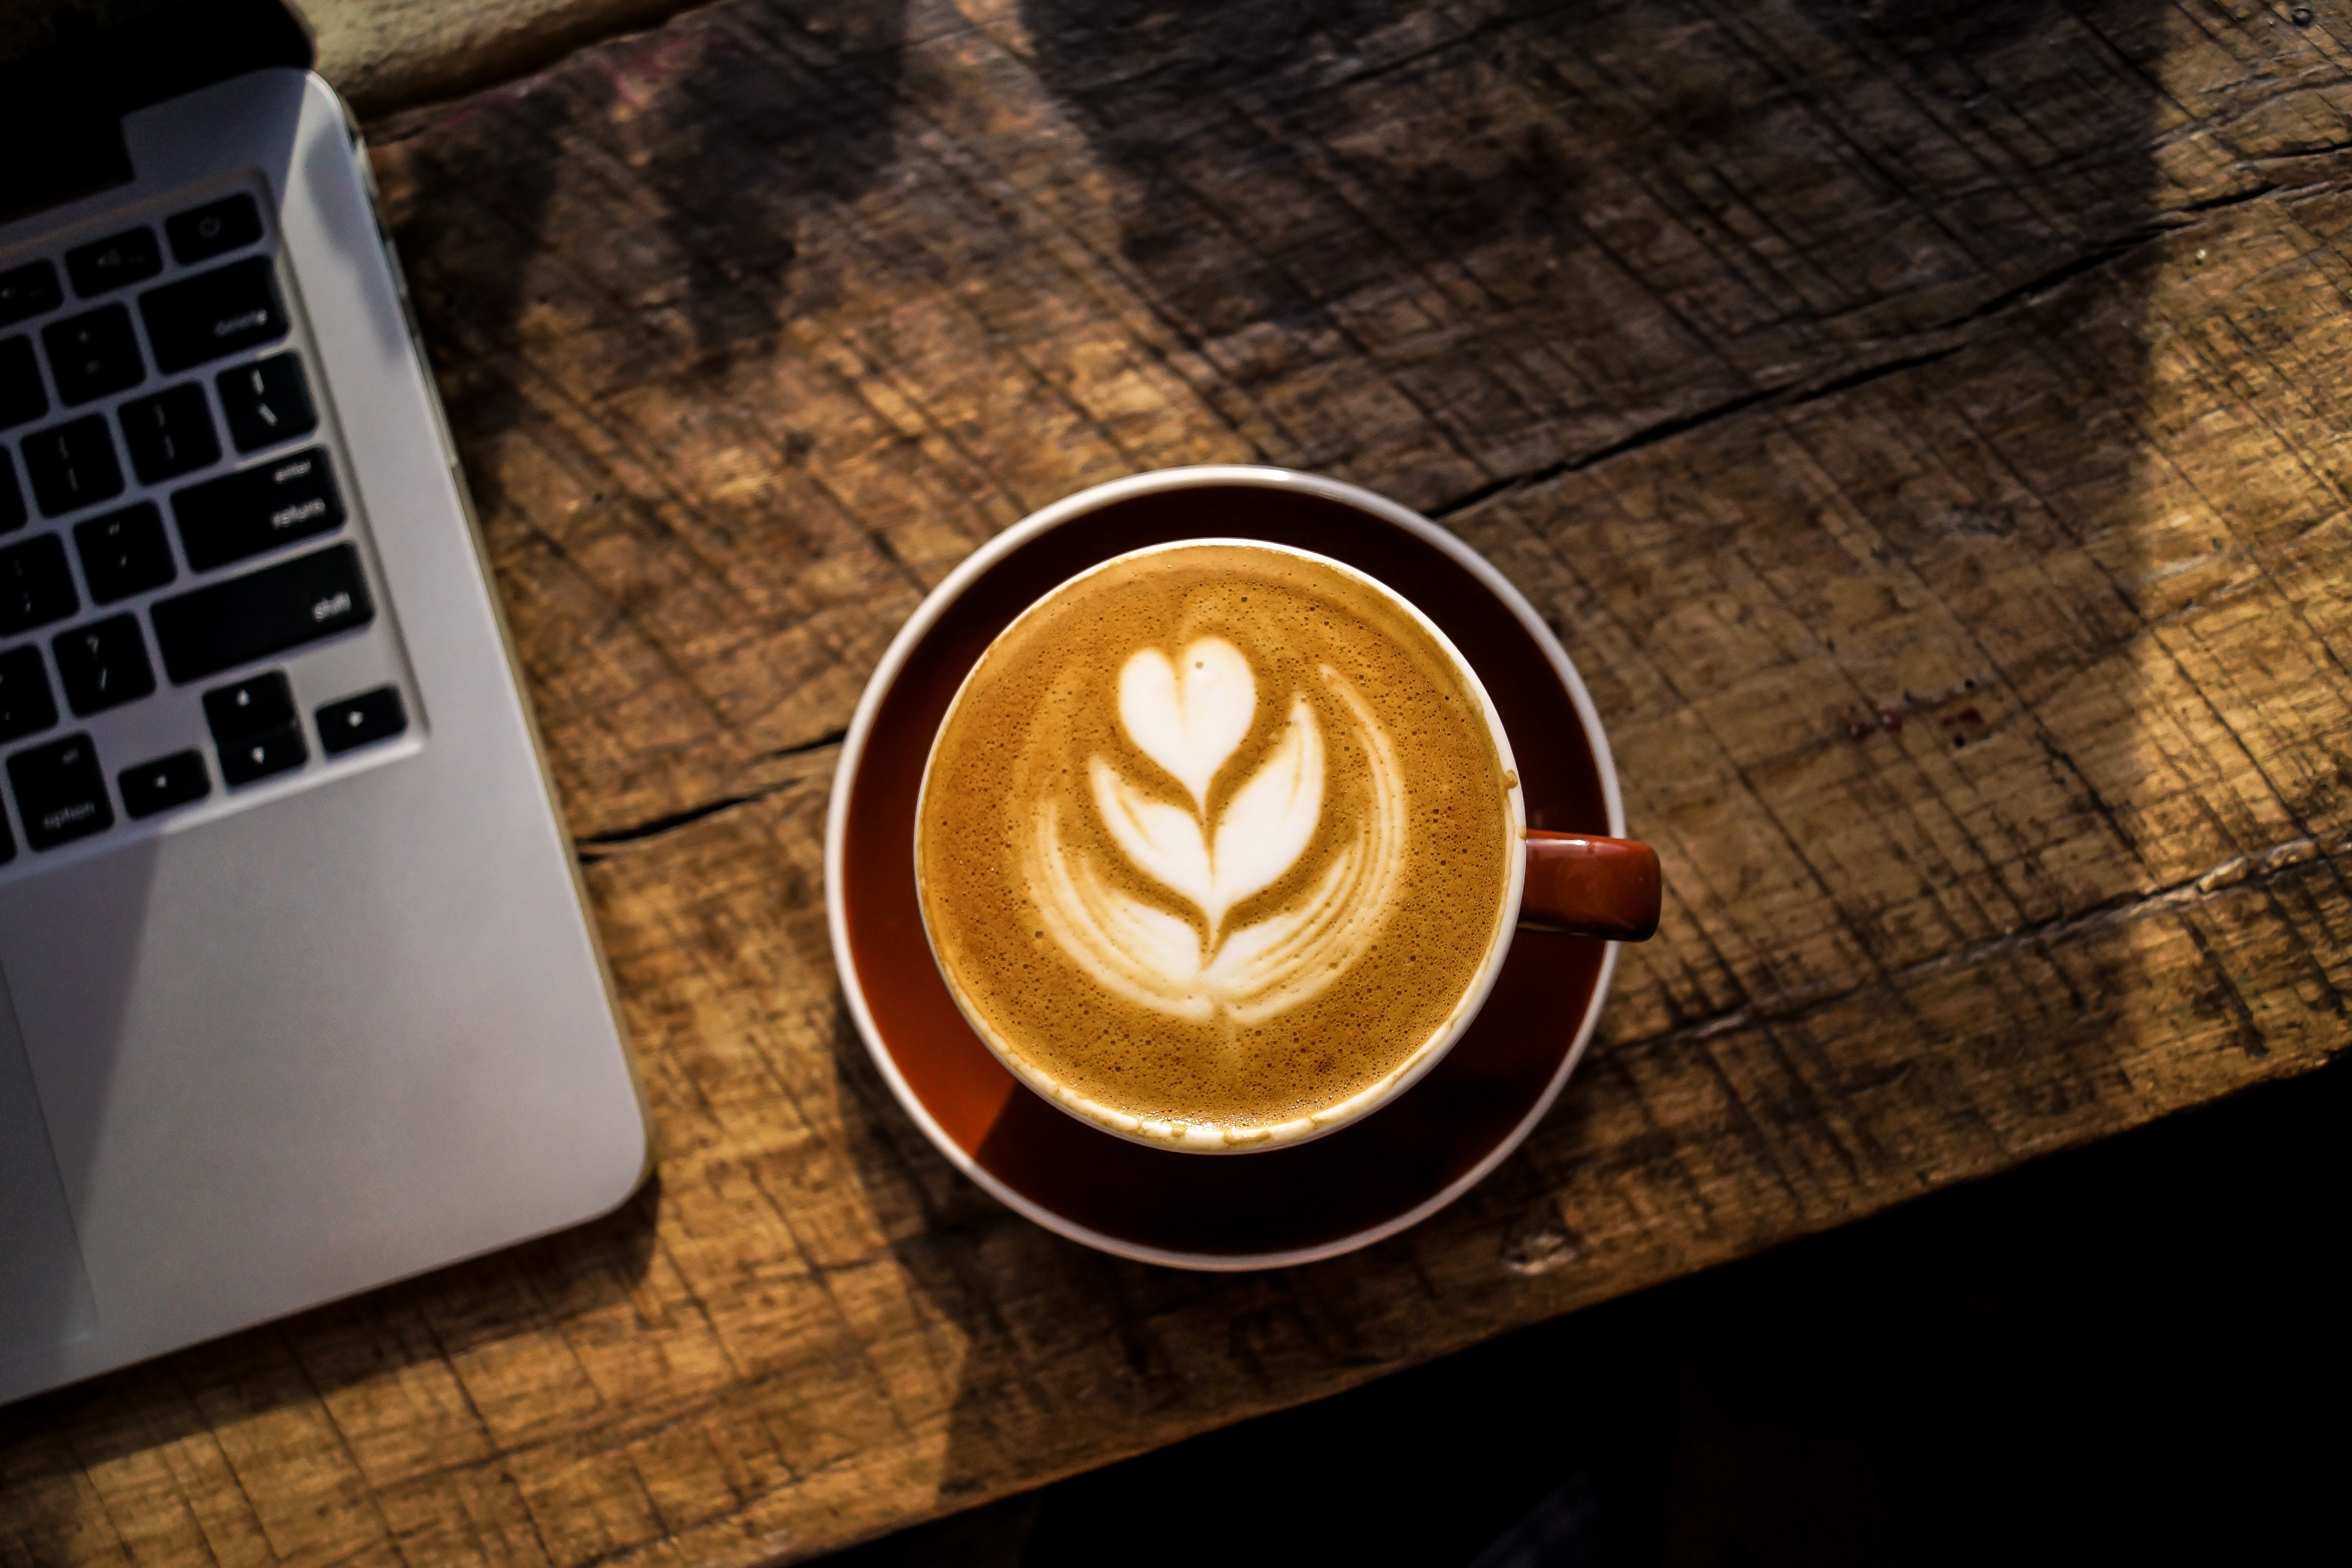 Latte art with a tulip pattern in a cup next to a laptop